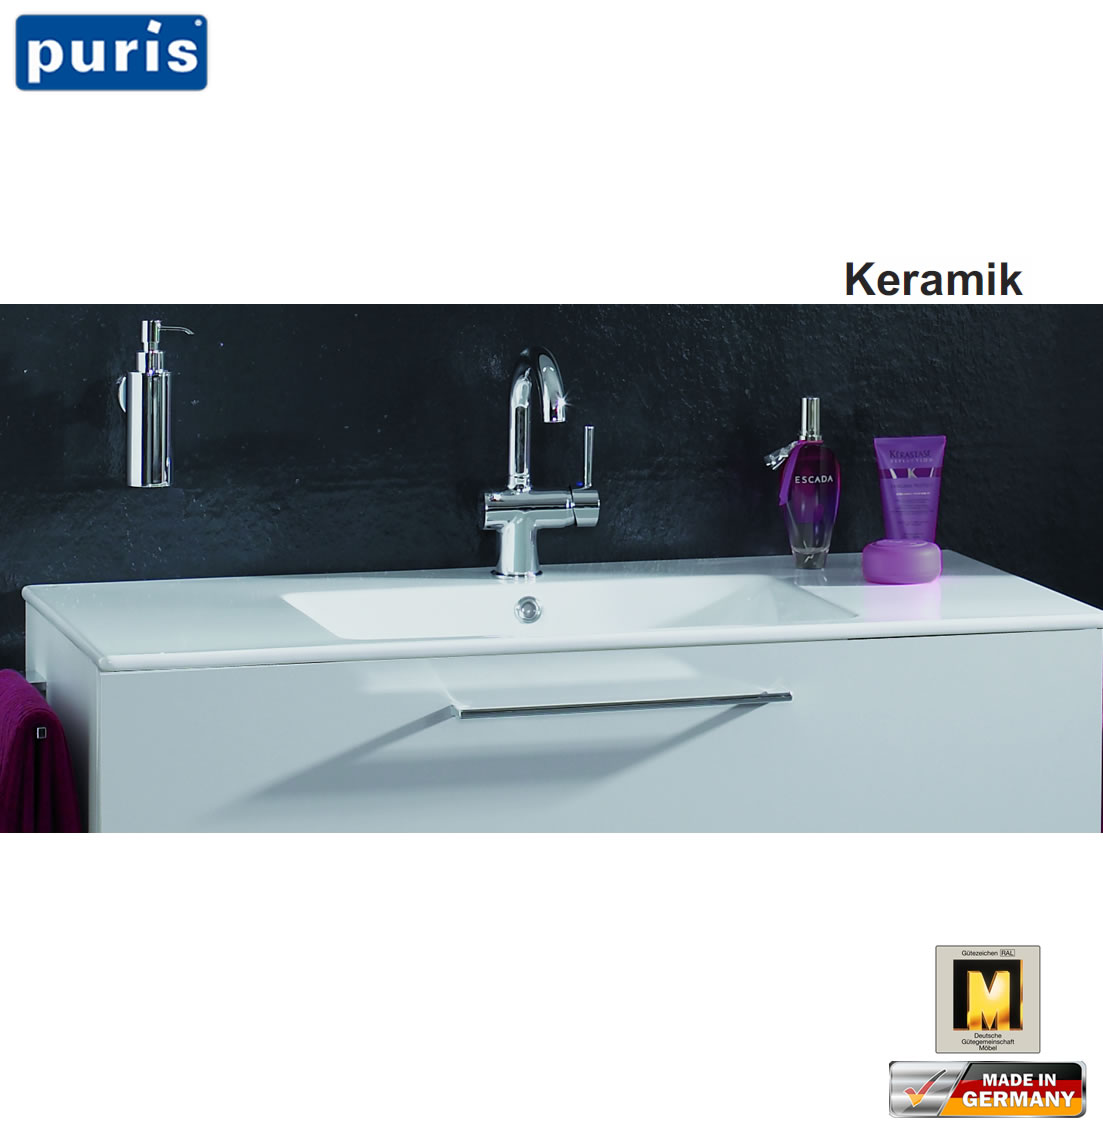 puris cool line waschtisch set 90 cm keramik led optional impuls home. Black Bedroom Furniture Sets. Home Design Ideas